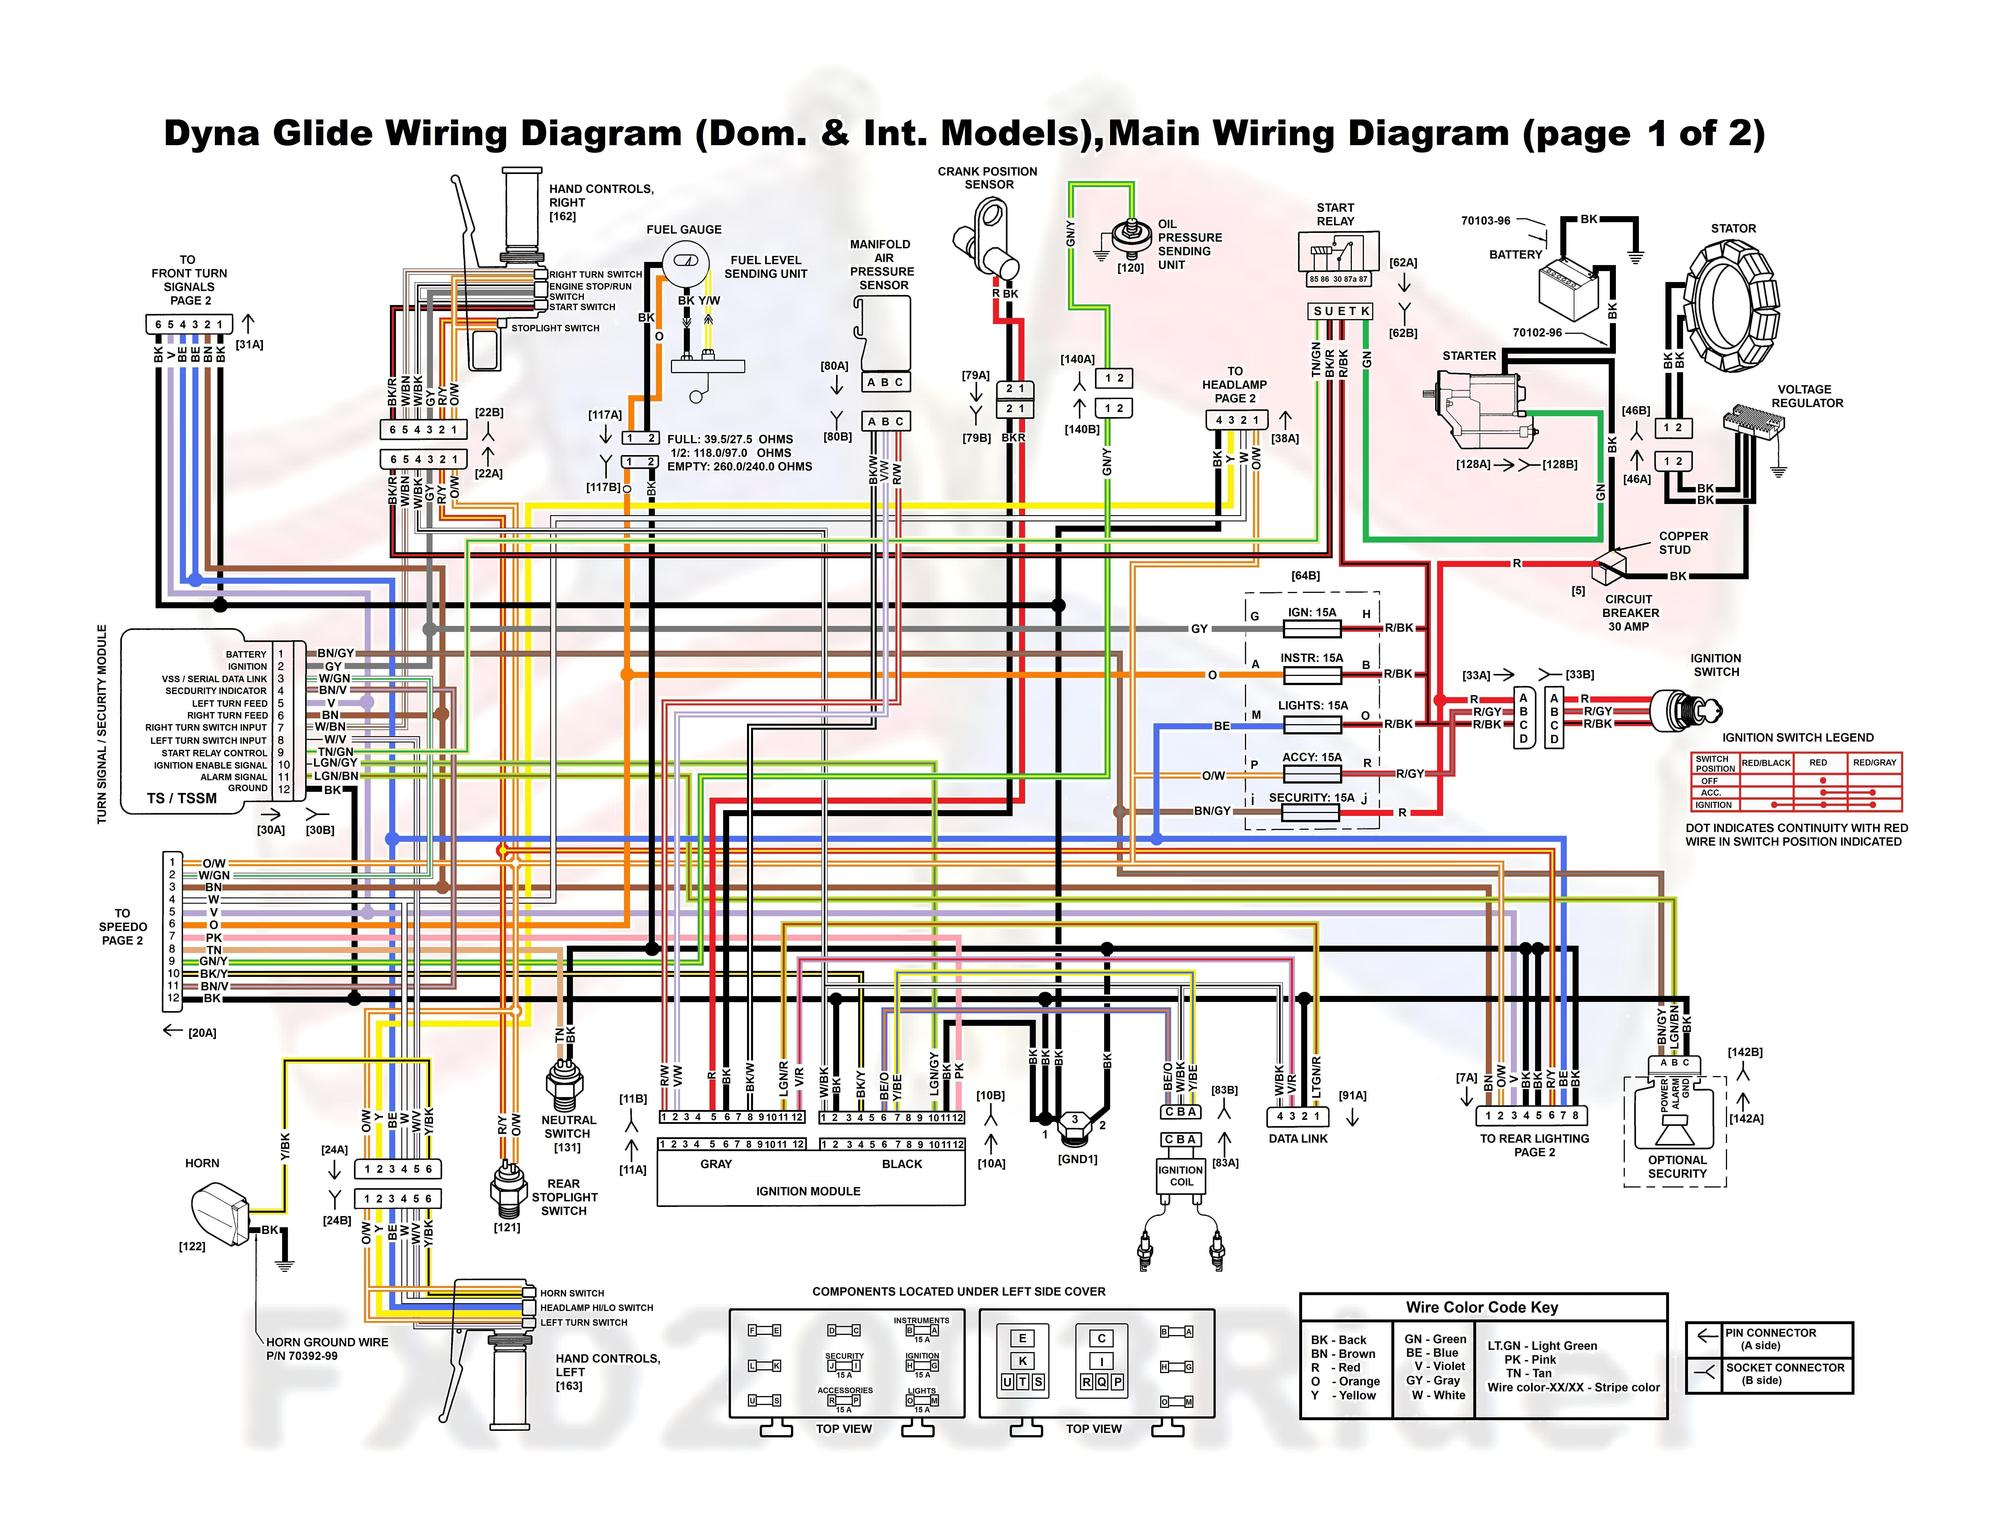 hight resolution of hd dyna wiring diagram 1999 simple wiring schema rh 34 aspire atlantis de victory motorcycle wiring diagram victory magnum wiring diagram